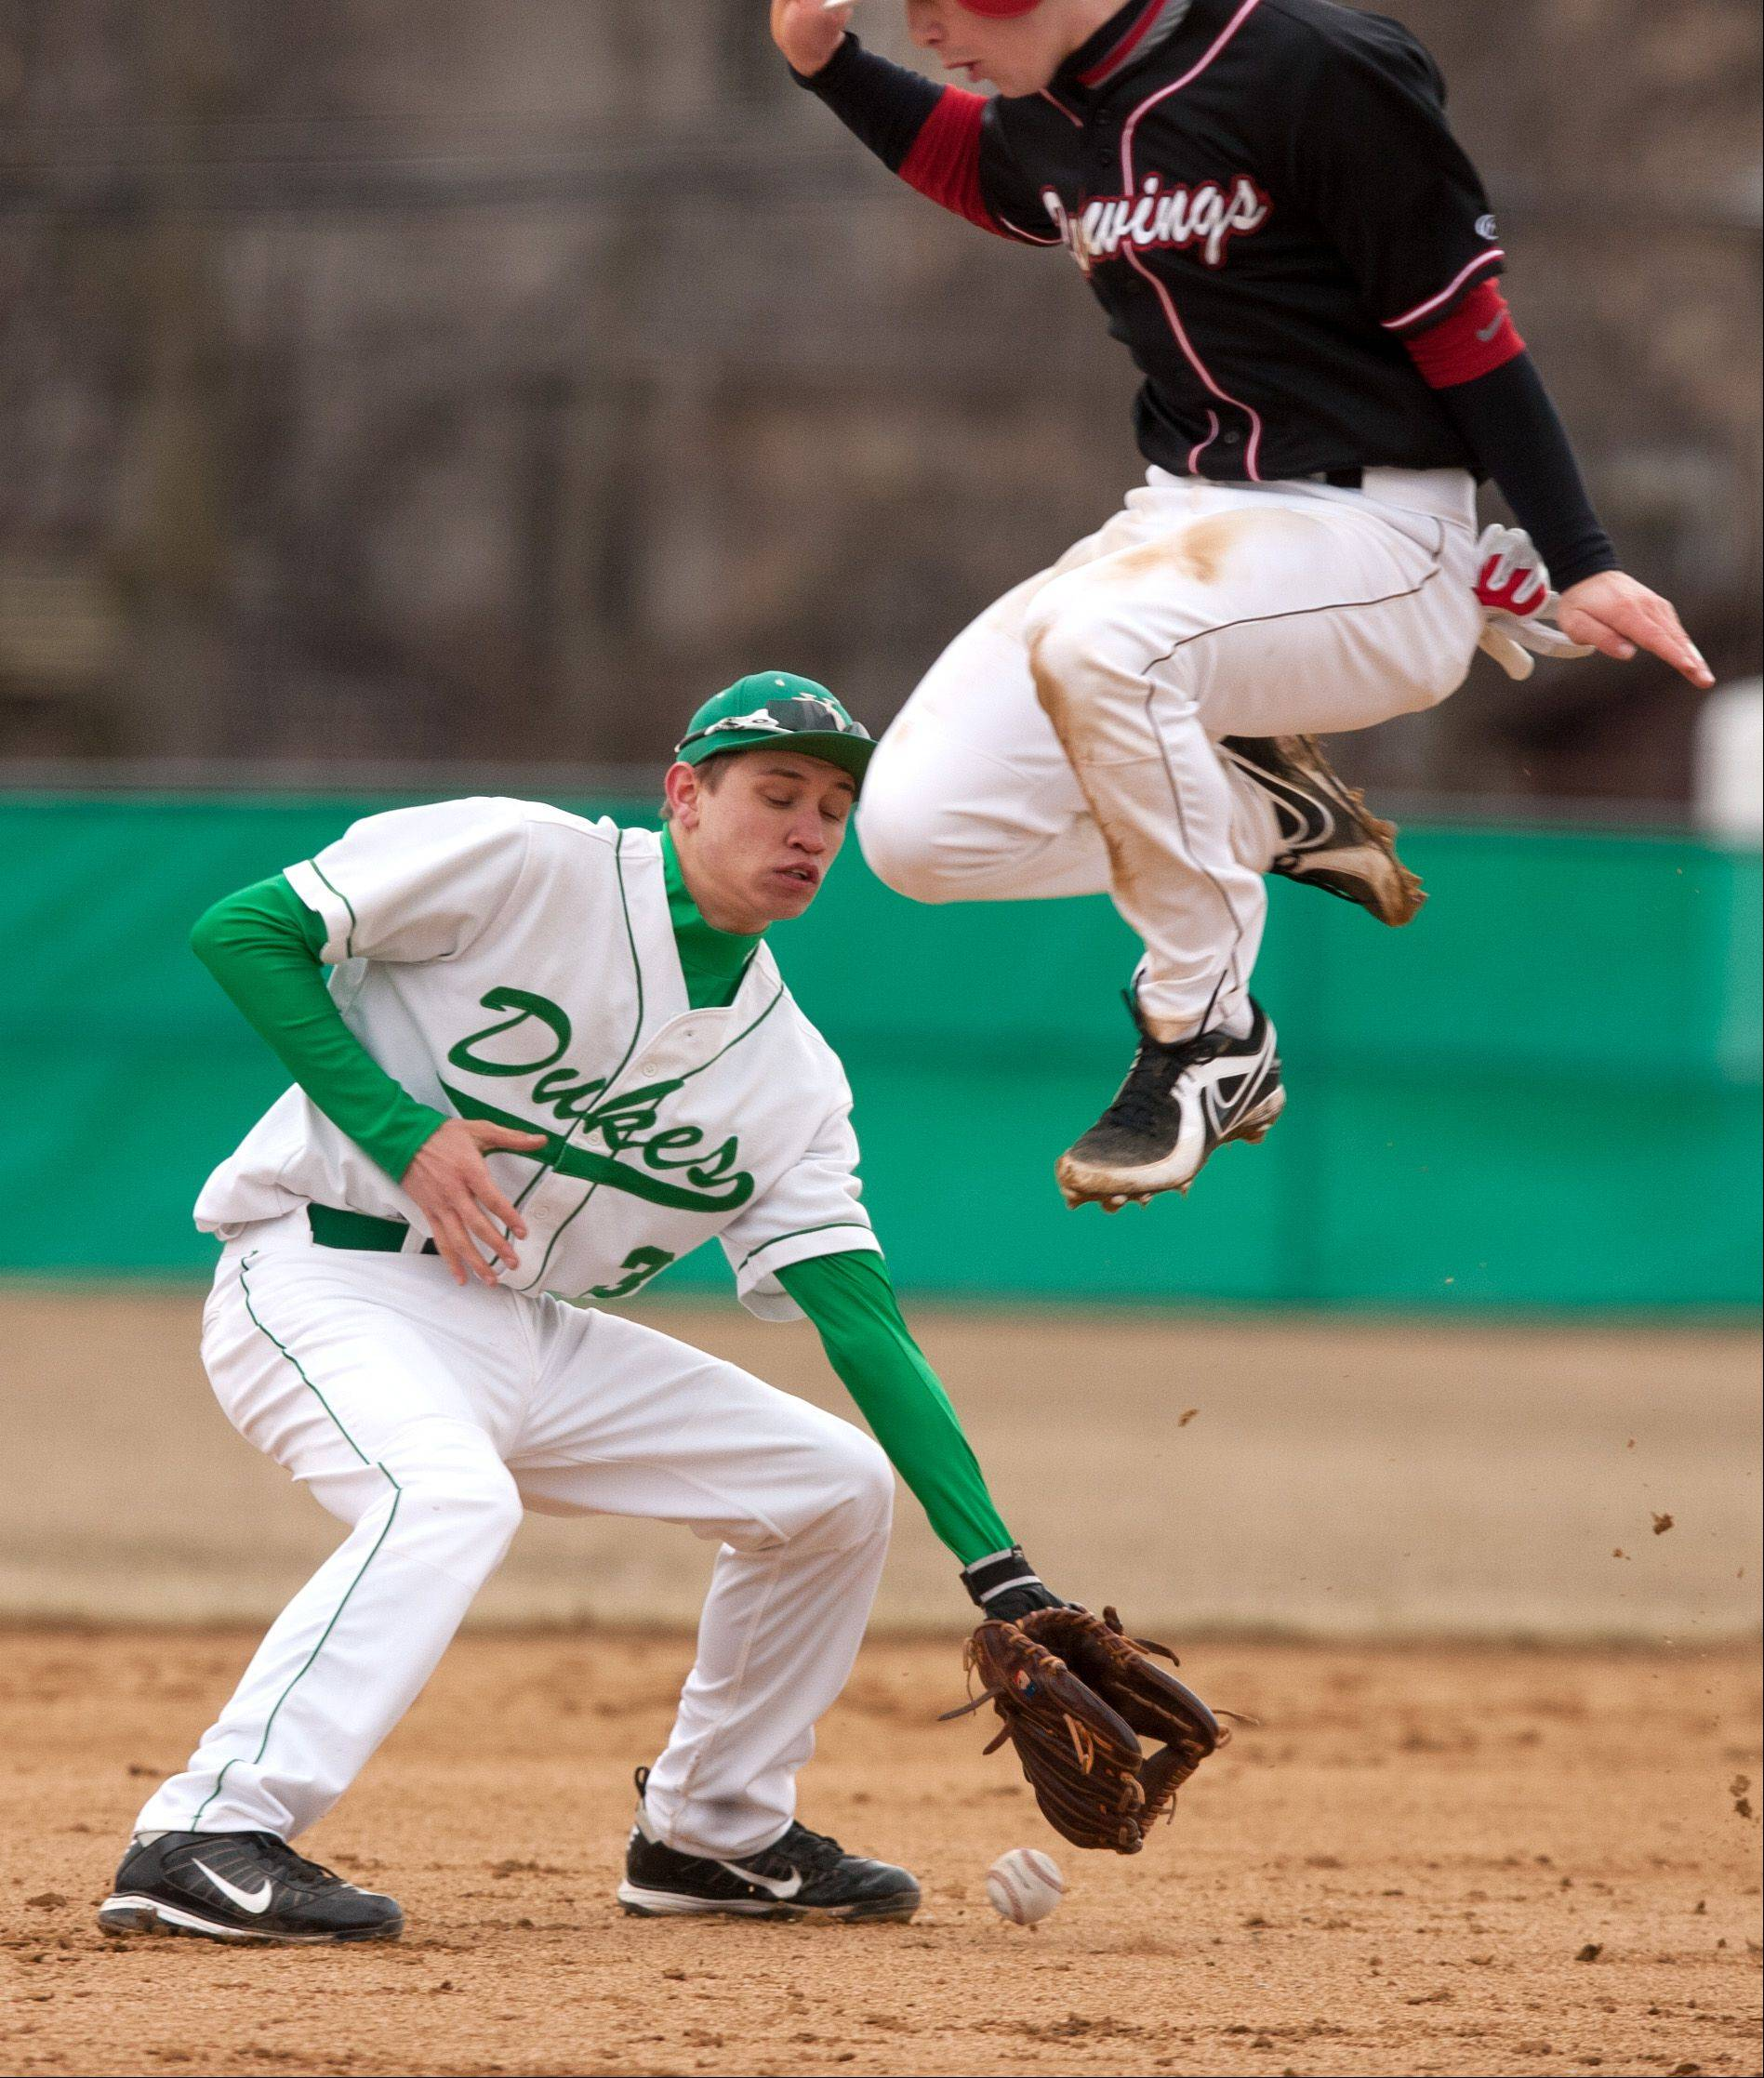 Benet baserunner Joe Boyle jumps to avoid getting hit by the ball, as York's Tyler Zunkel looks to field the ball, during baseball action in Elmhurst.